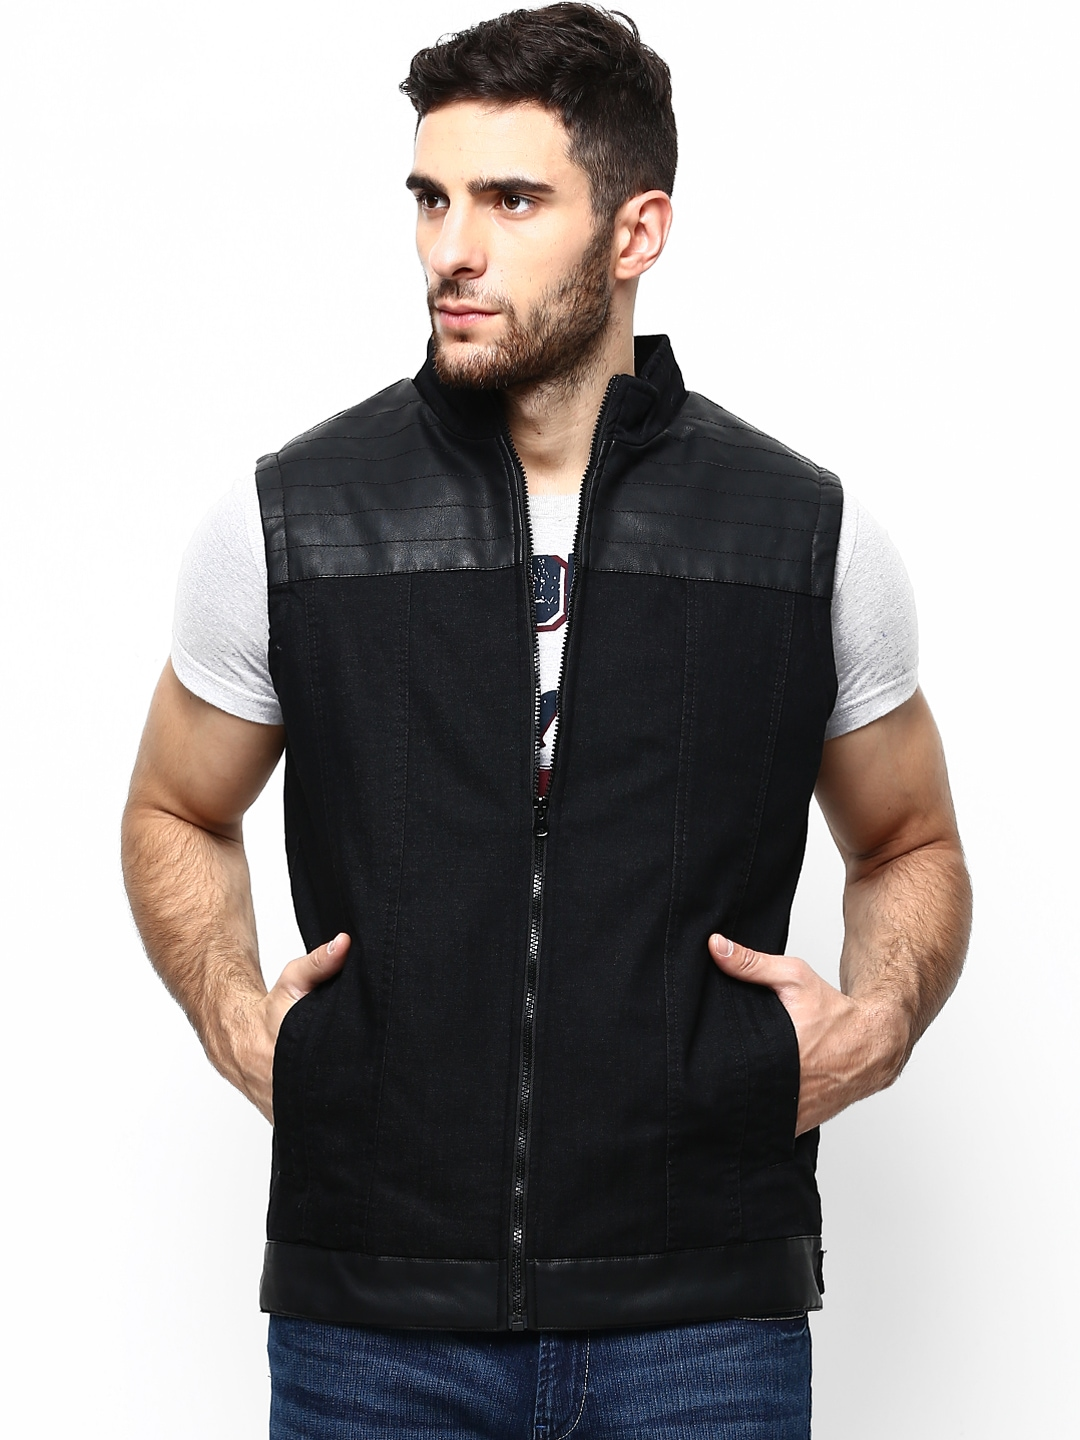 Superdry men's gilets - from quilted, fleece lined gilets to lightweight gilets. warmth and function is key, with hooded options and deep pockets.